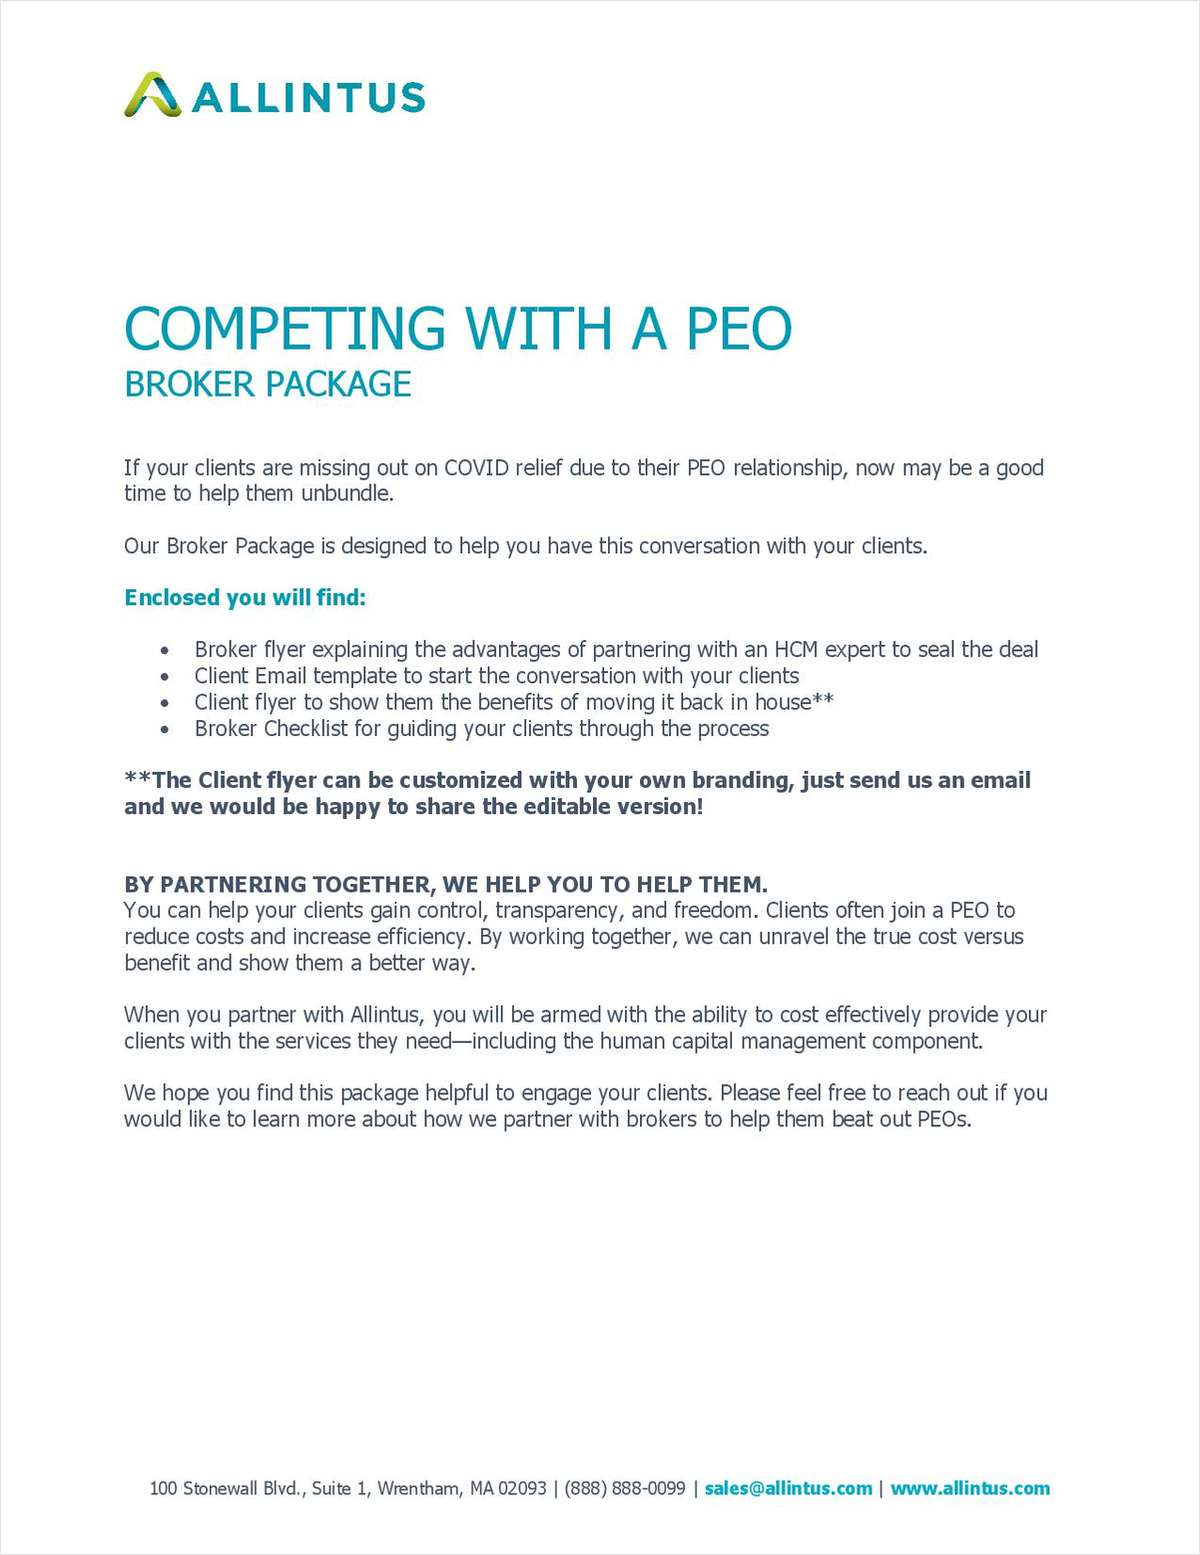 Competing with a PEO: Broker Toolkit